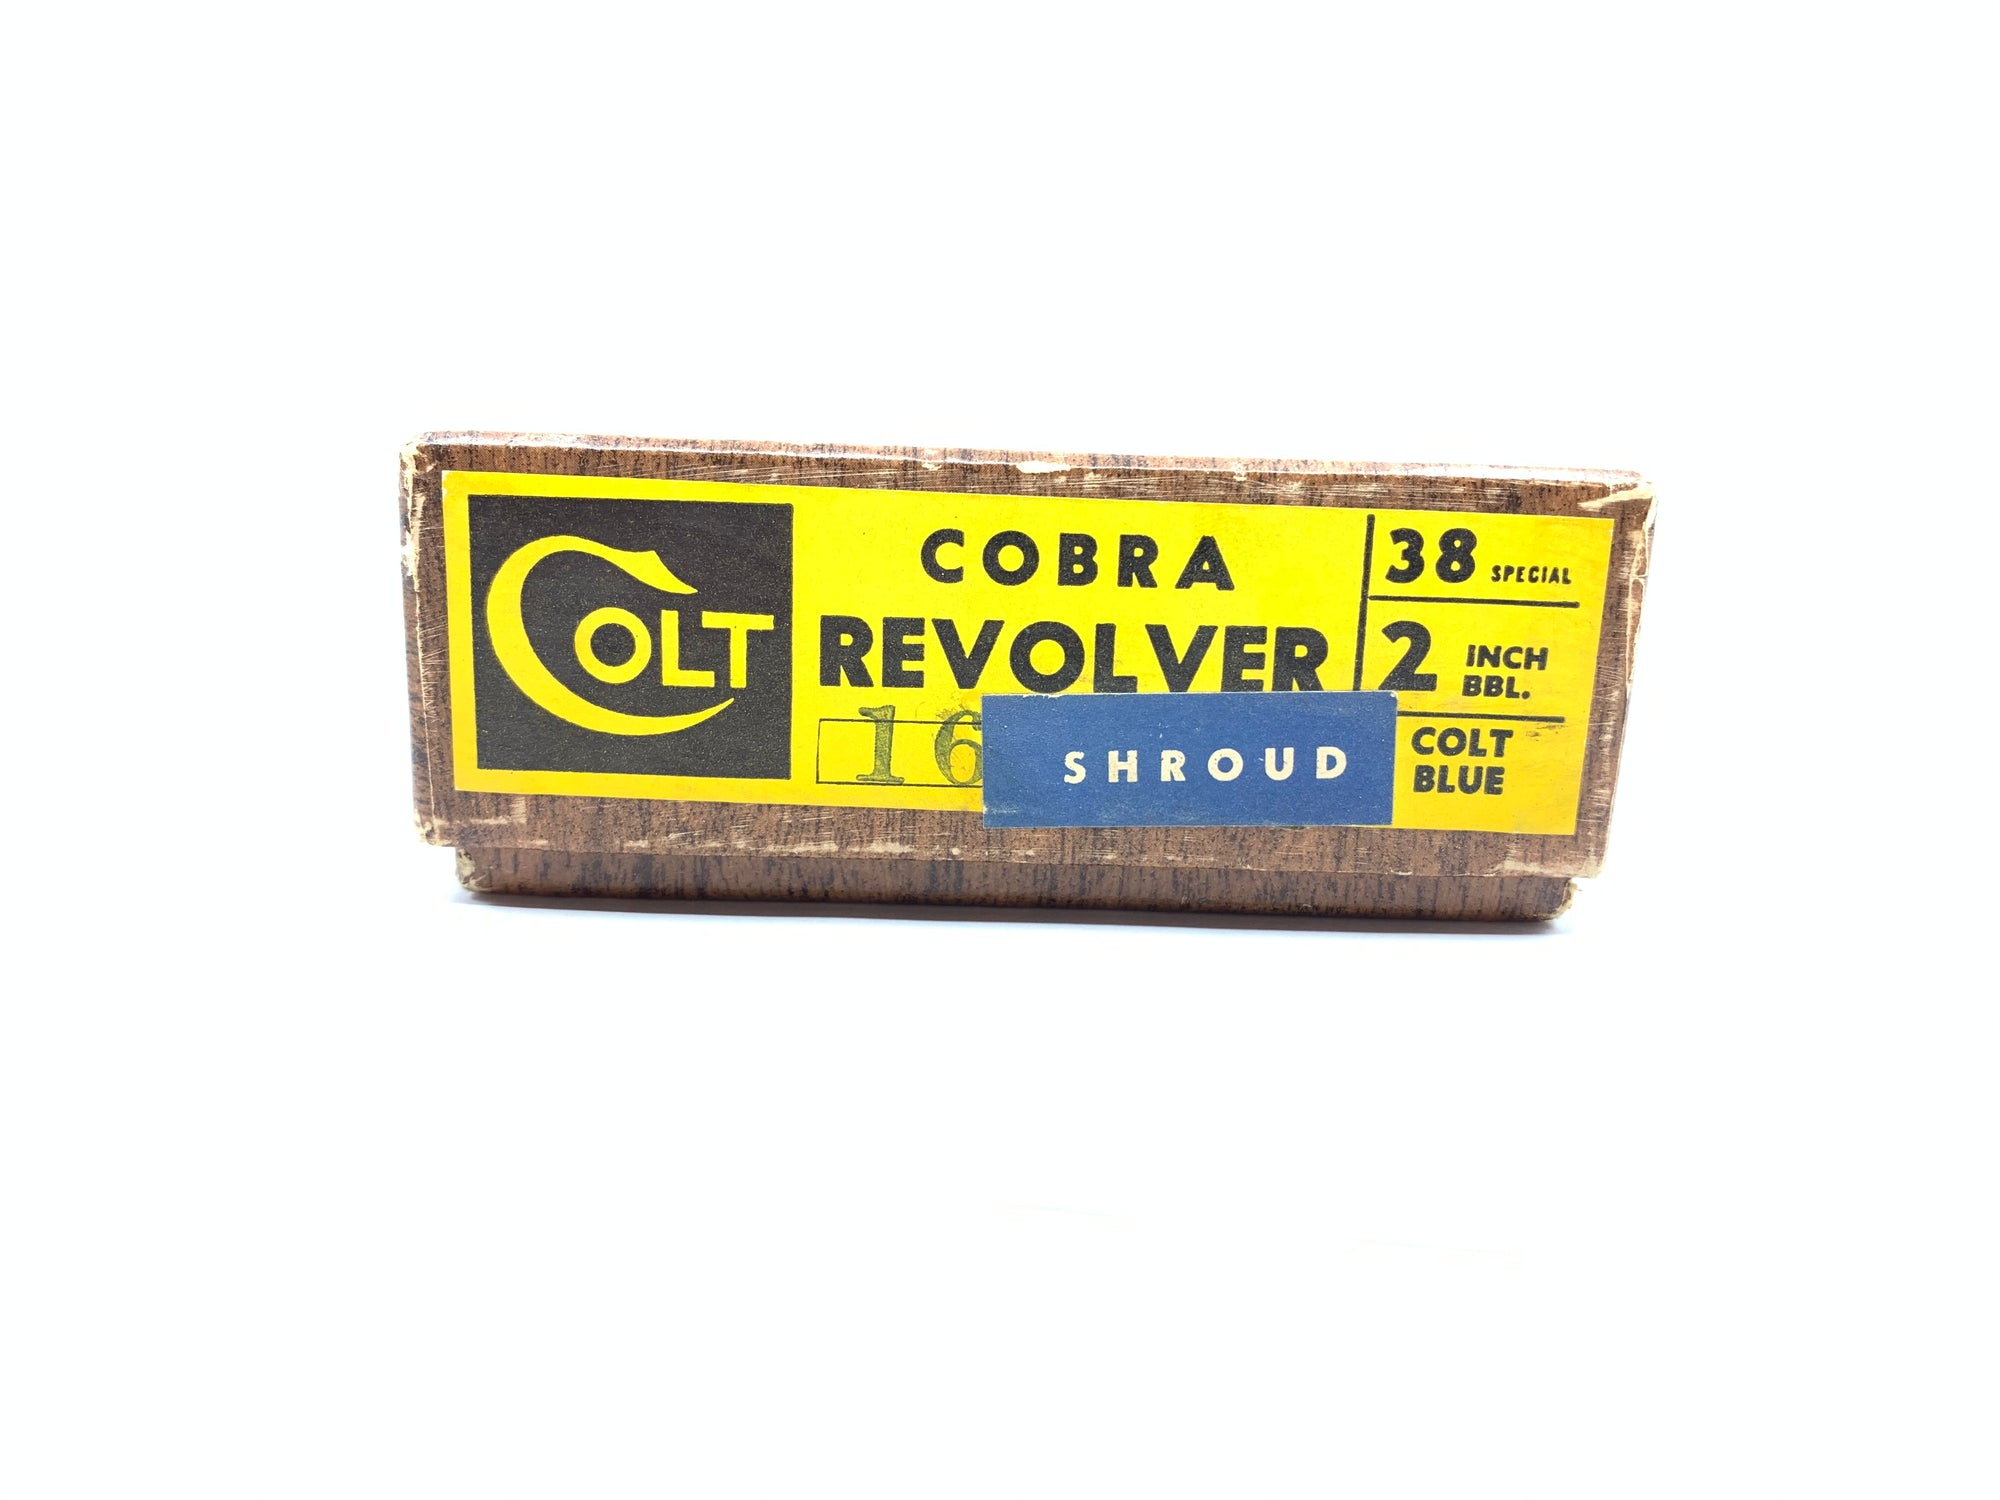 "Colt Cobra Revolver Box Only 38 Spec 2"" Blued has Shroud Sticker"